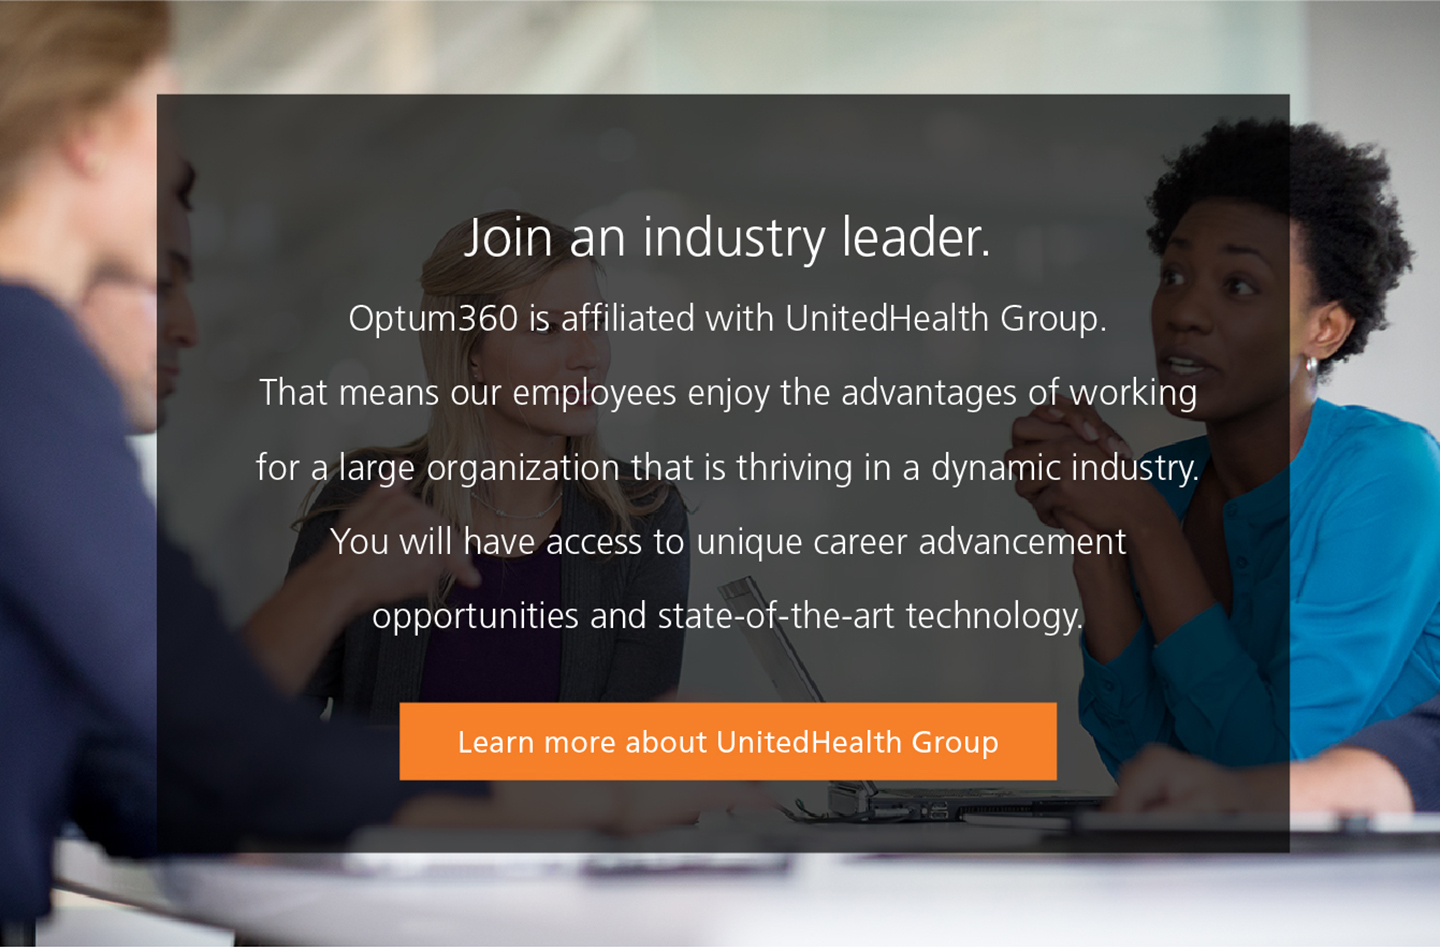 careers optum360 what kind of opportunity are you seeking